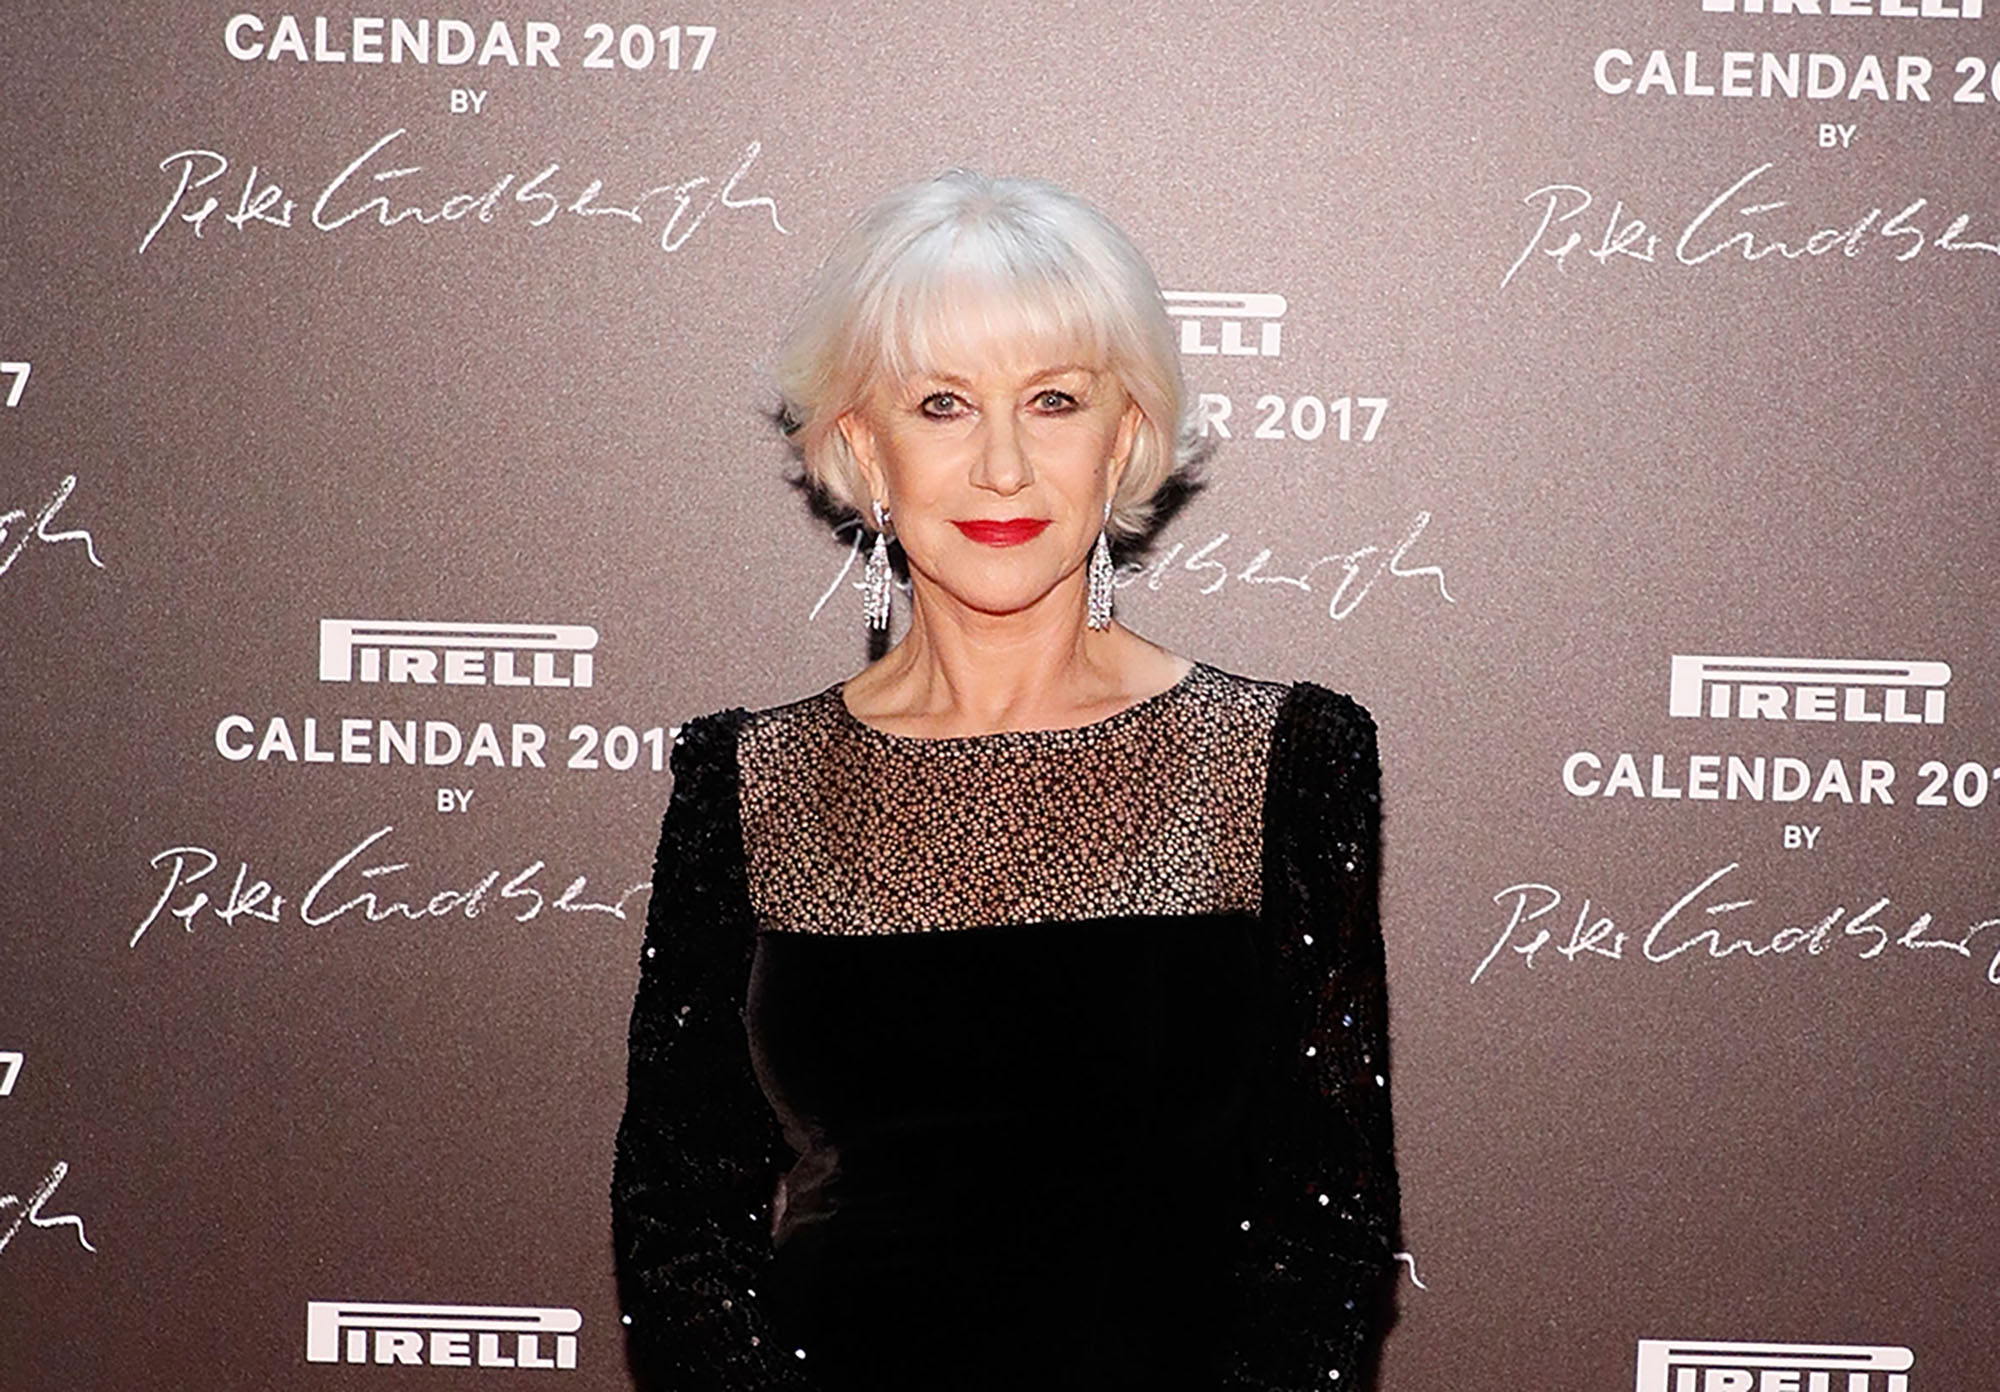 Helen Mirren attends the 2016 Pirelli Calendar unveiling gala at La Cite Du Cinema on November 29, 2016 in Saint-Denis, France.  (Photo by Taylor Hill/WireImage)